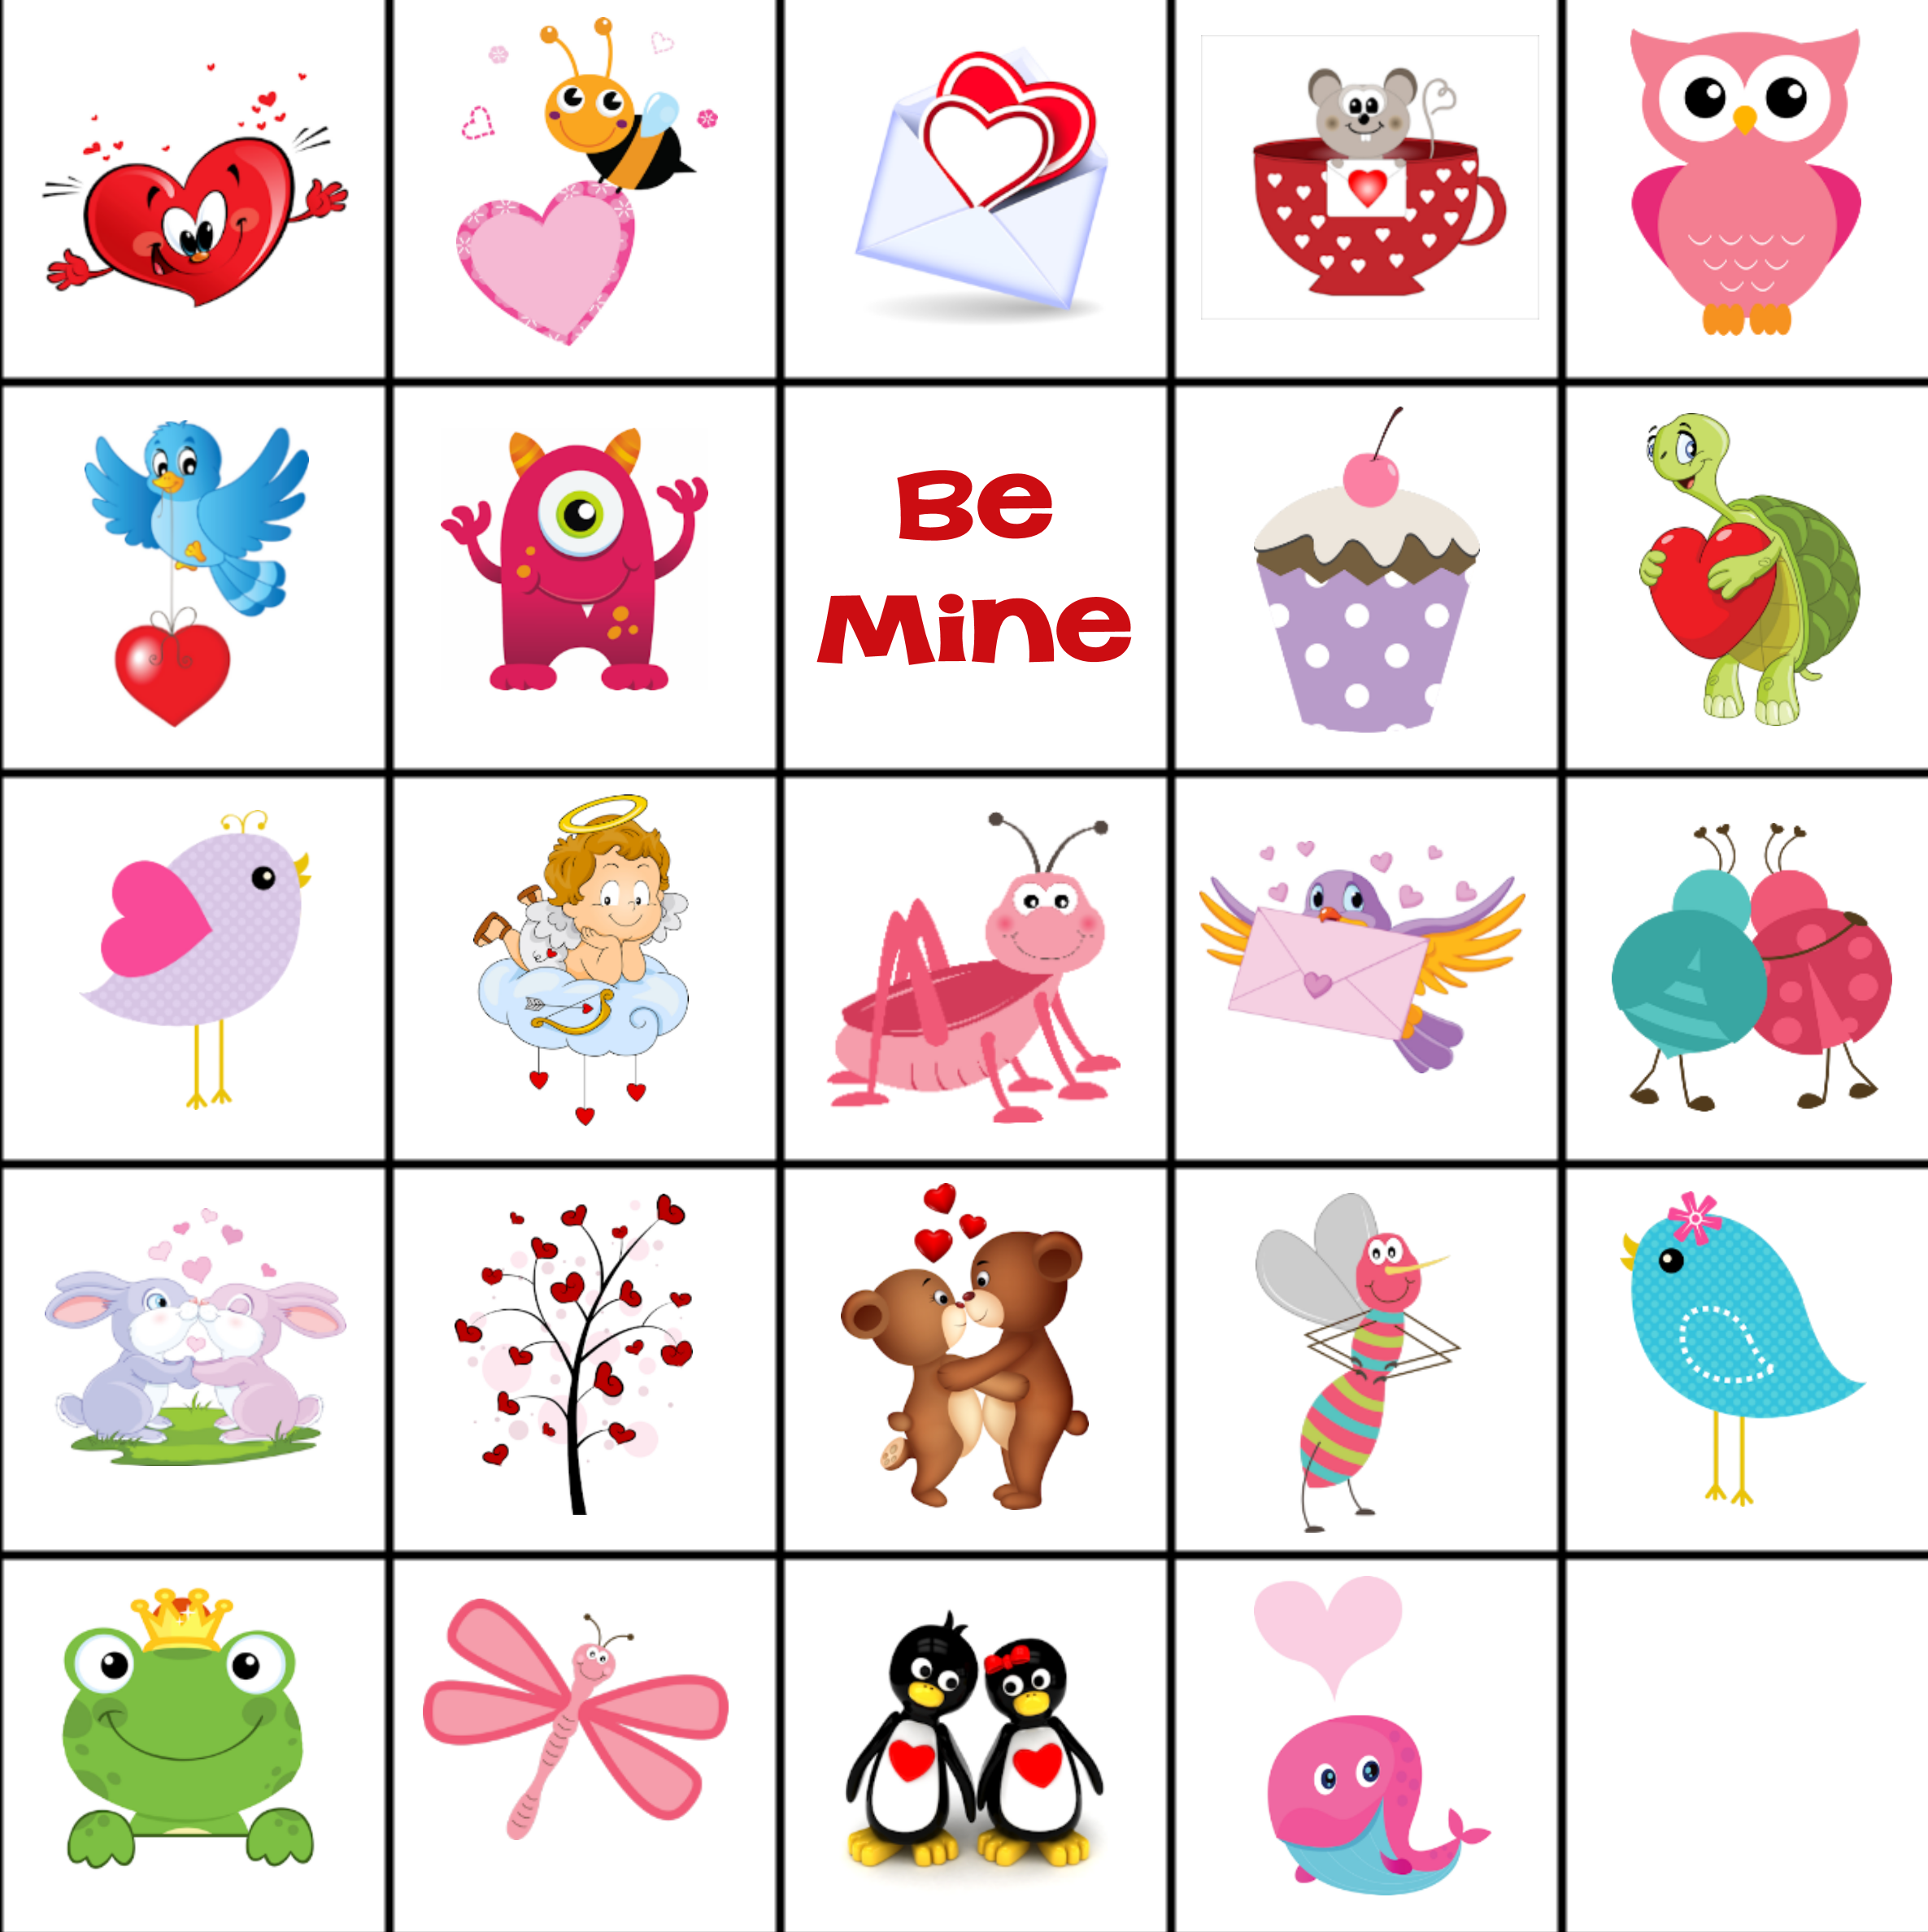 Légend image with printable match game